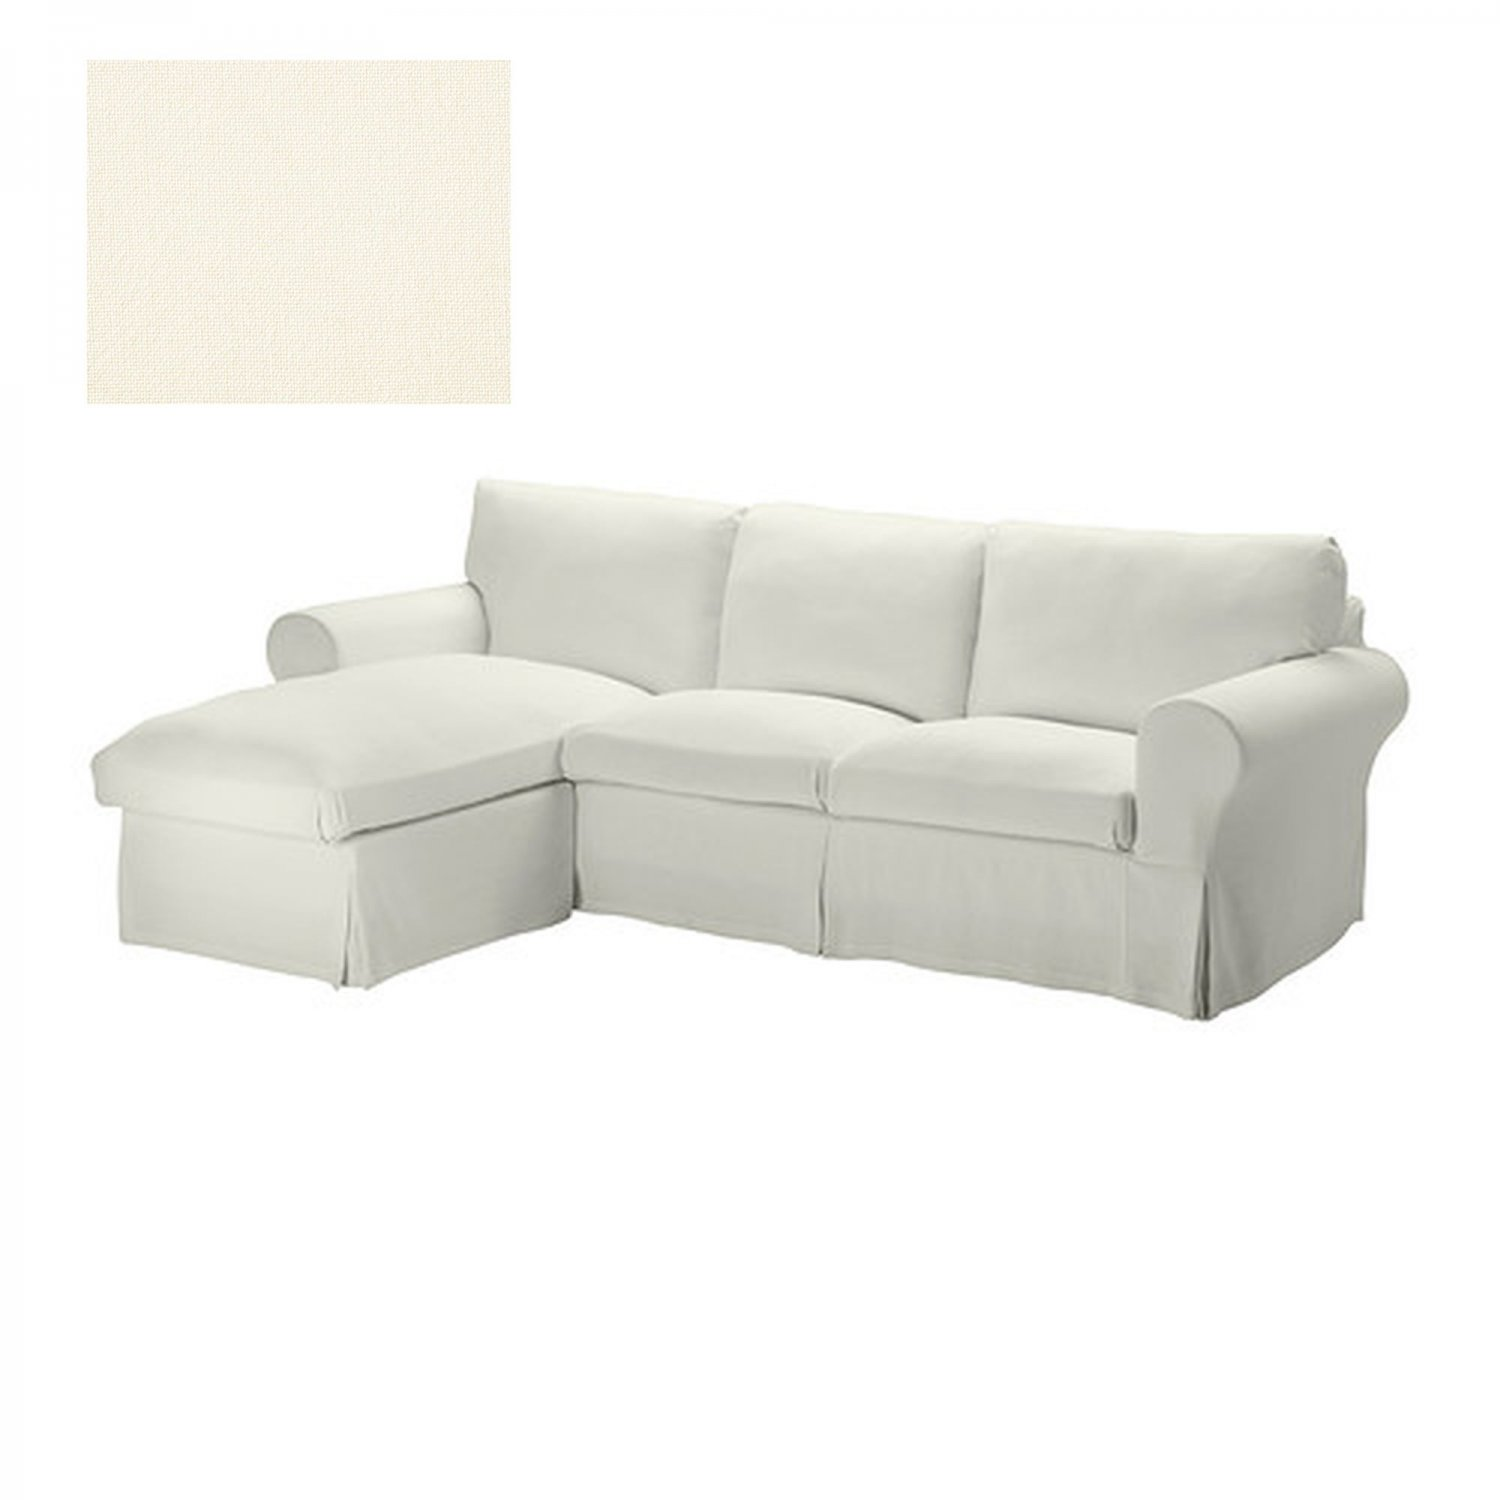 Ikea ektorp loveseat sofa w chaise slipcover 3 seat for Chaise longue ikea